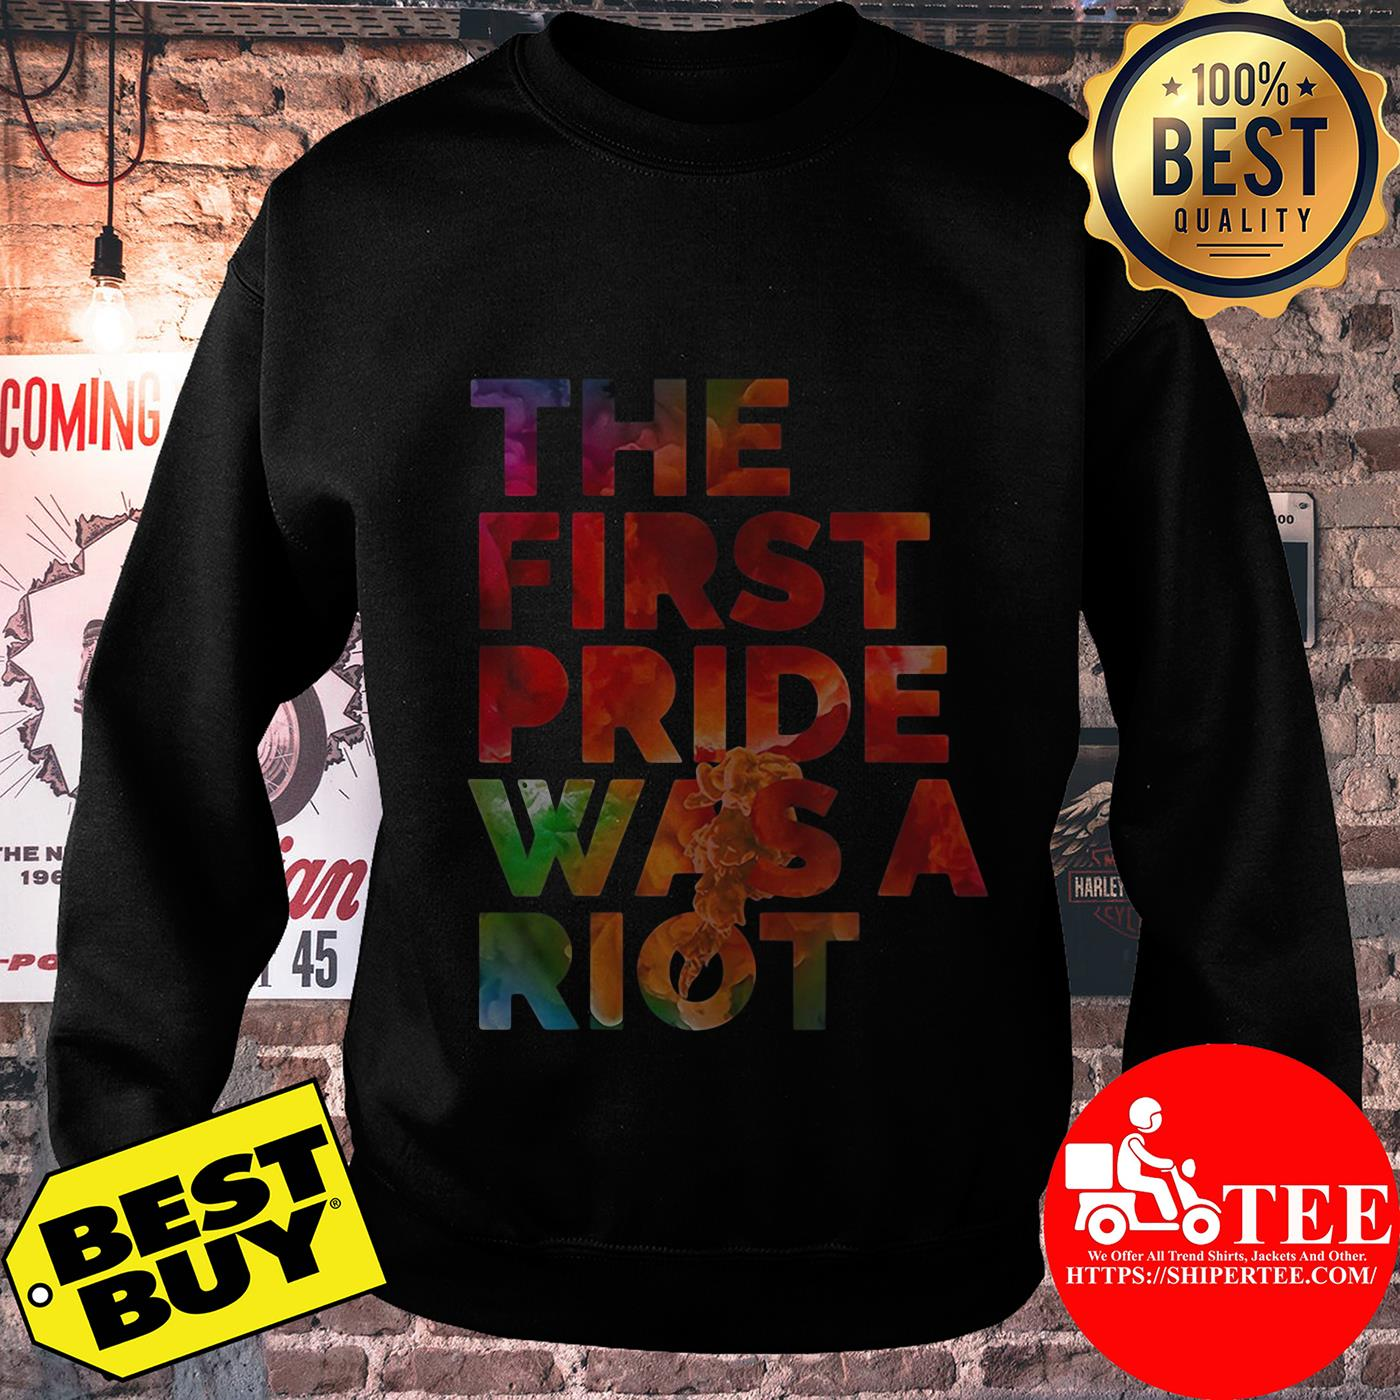 The first pride was a riot sweatshirt